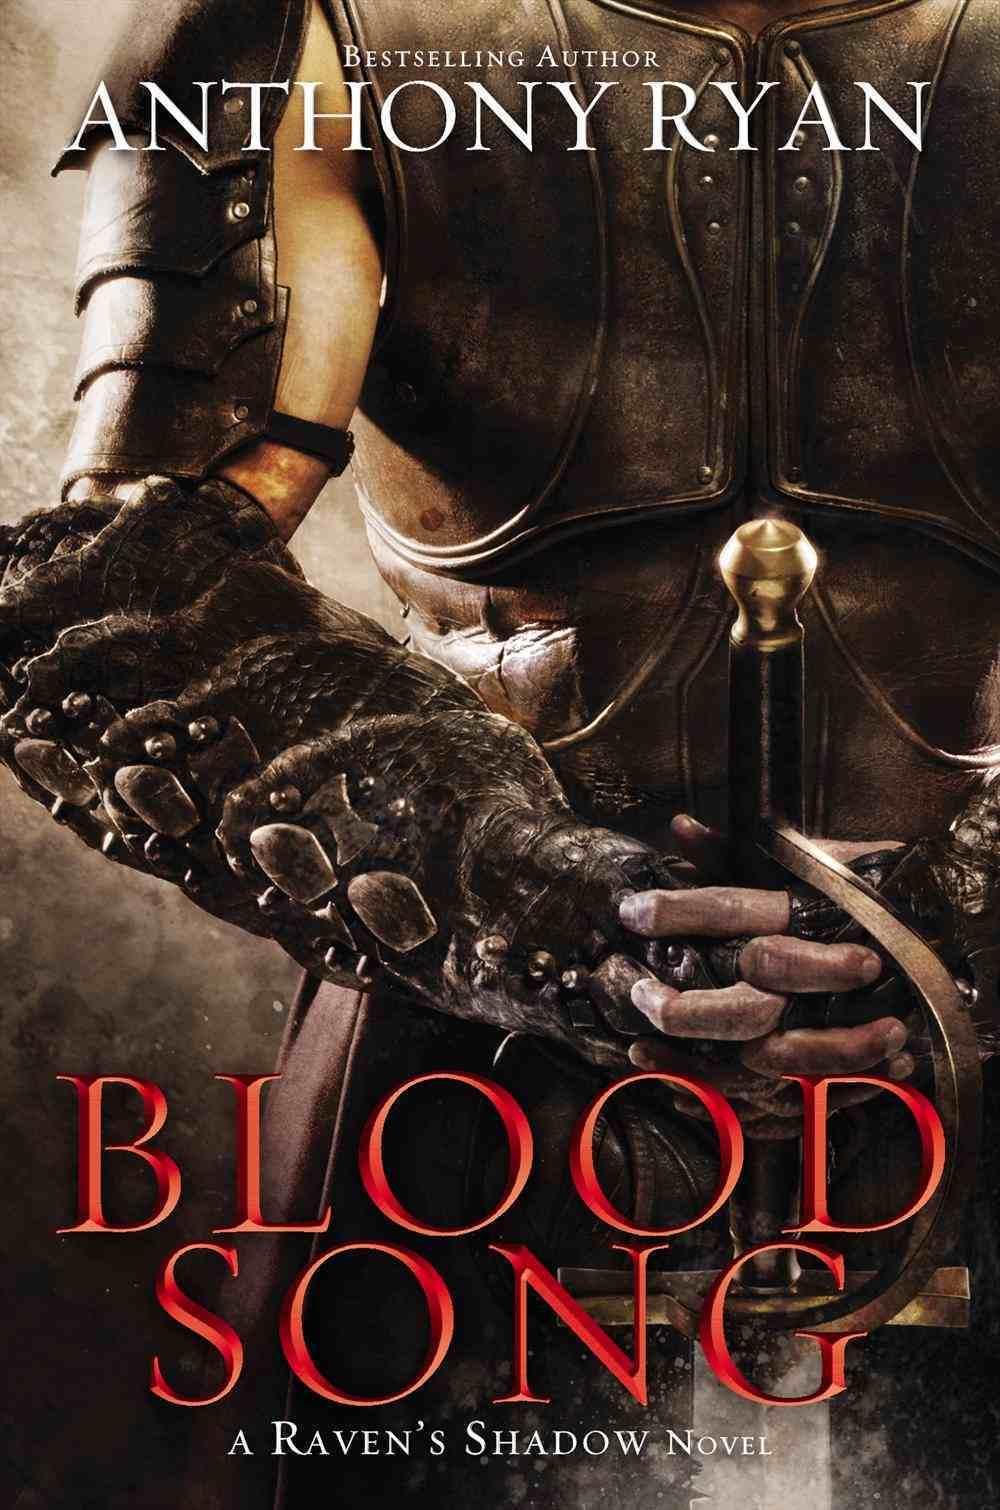 Blood Song by Anthony Ryan (Raven's Shadow #1)